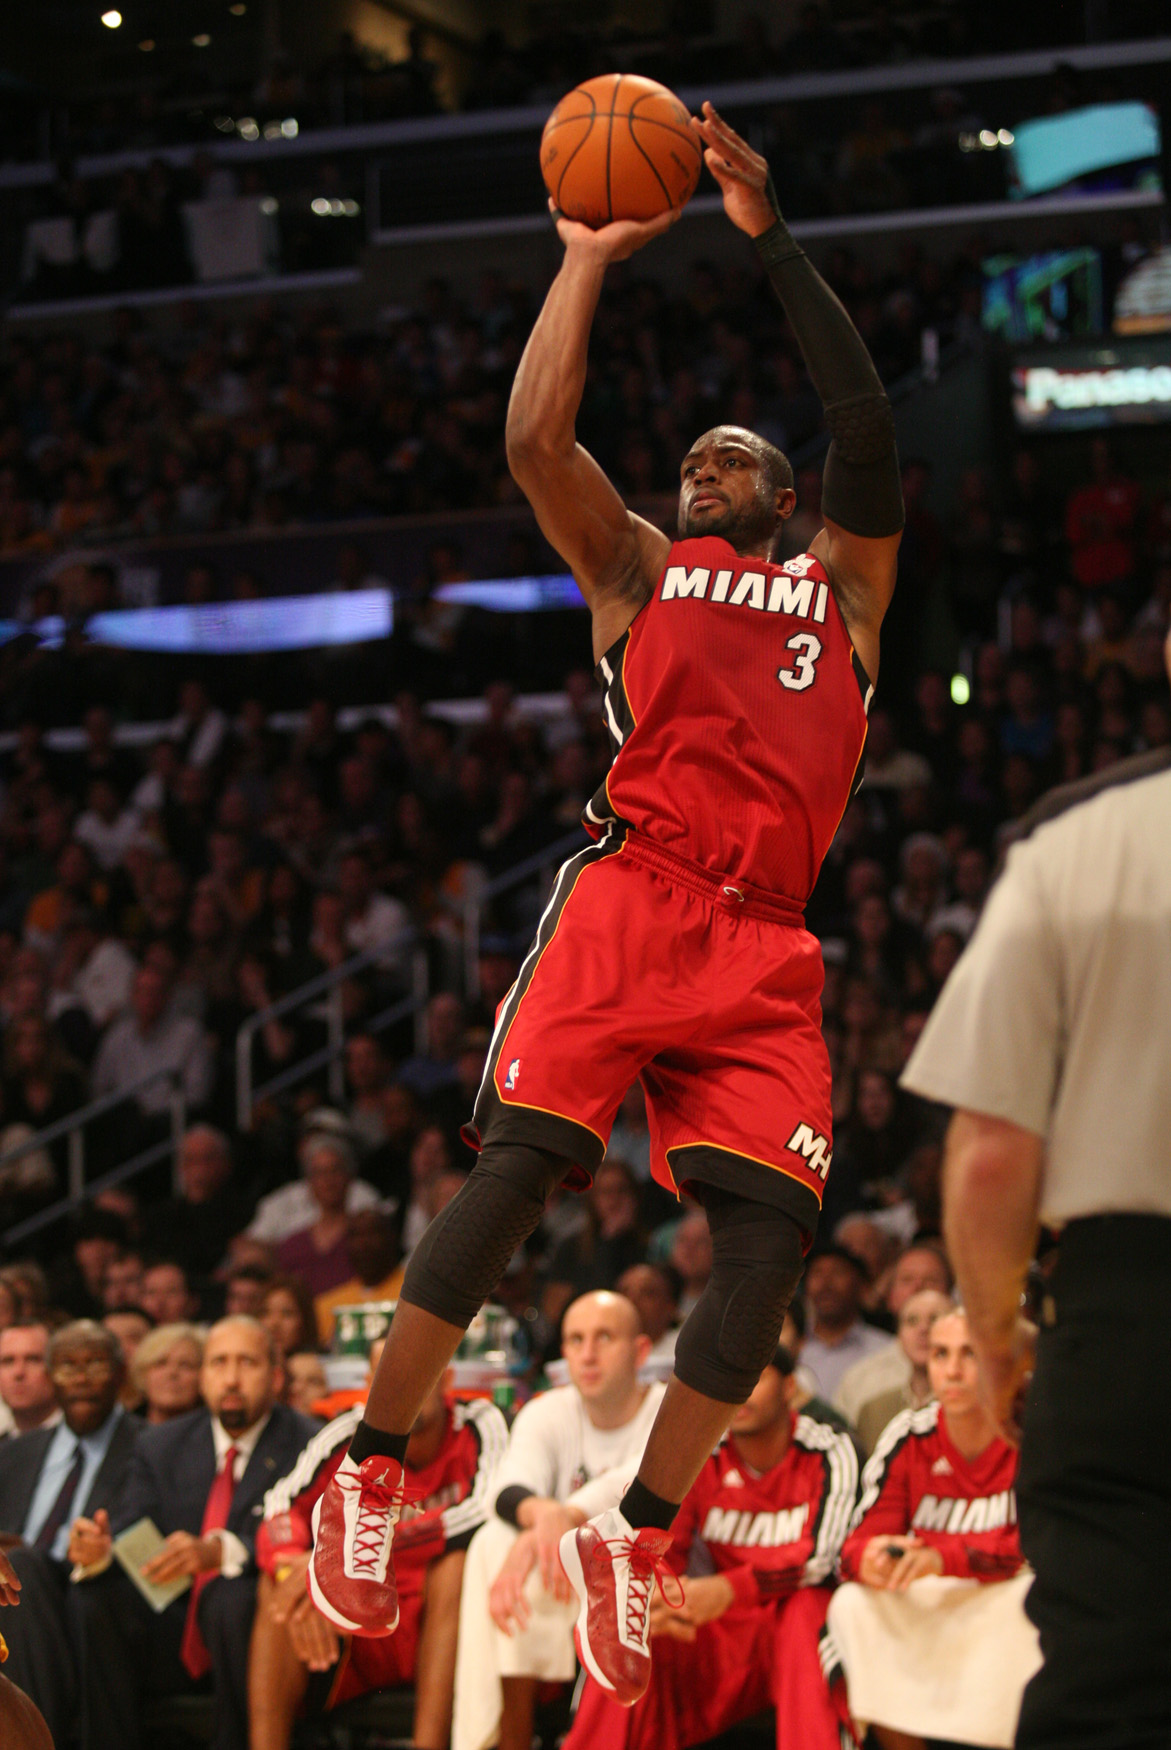 Miami Heat star Dwayne Wade is shooting his way into the league MVP conversation./Photo Credit: Burt Harris/HGStar1-News